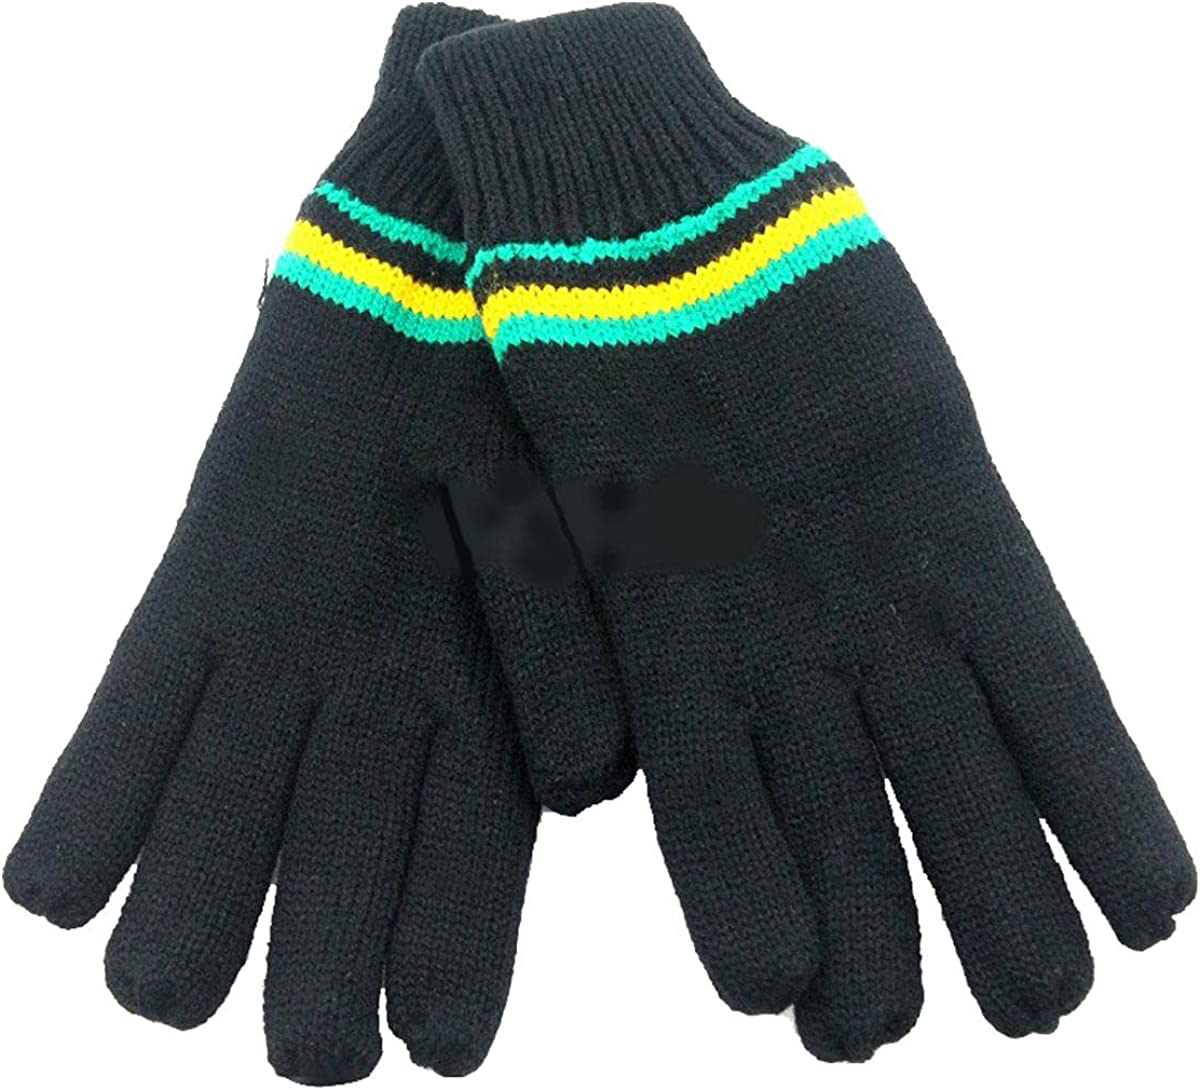 Rimi Hanger 6 Pieces Ladies Insulated Black Gloves Cold Weather Gloves Running Hiking Gloves